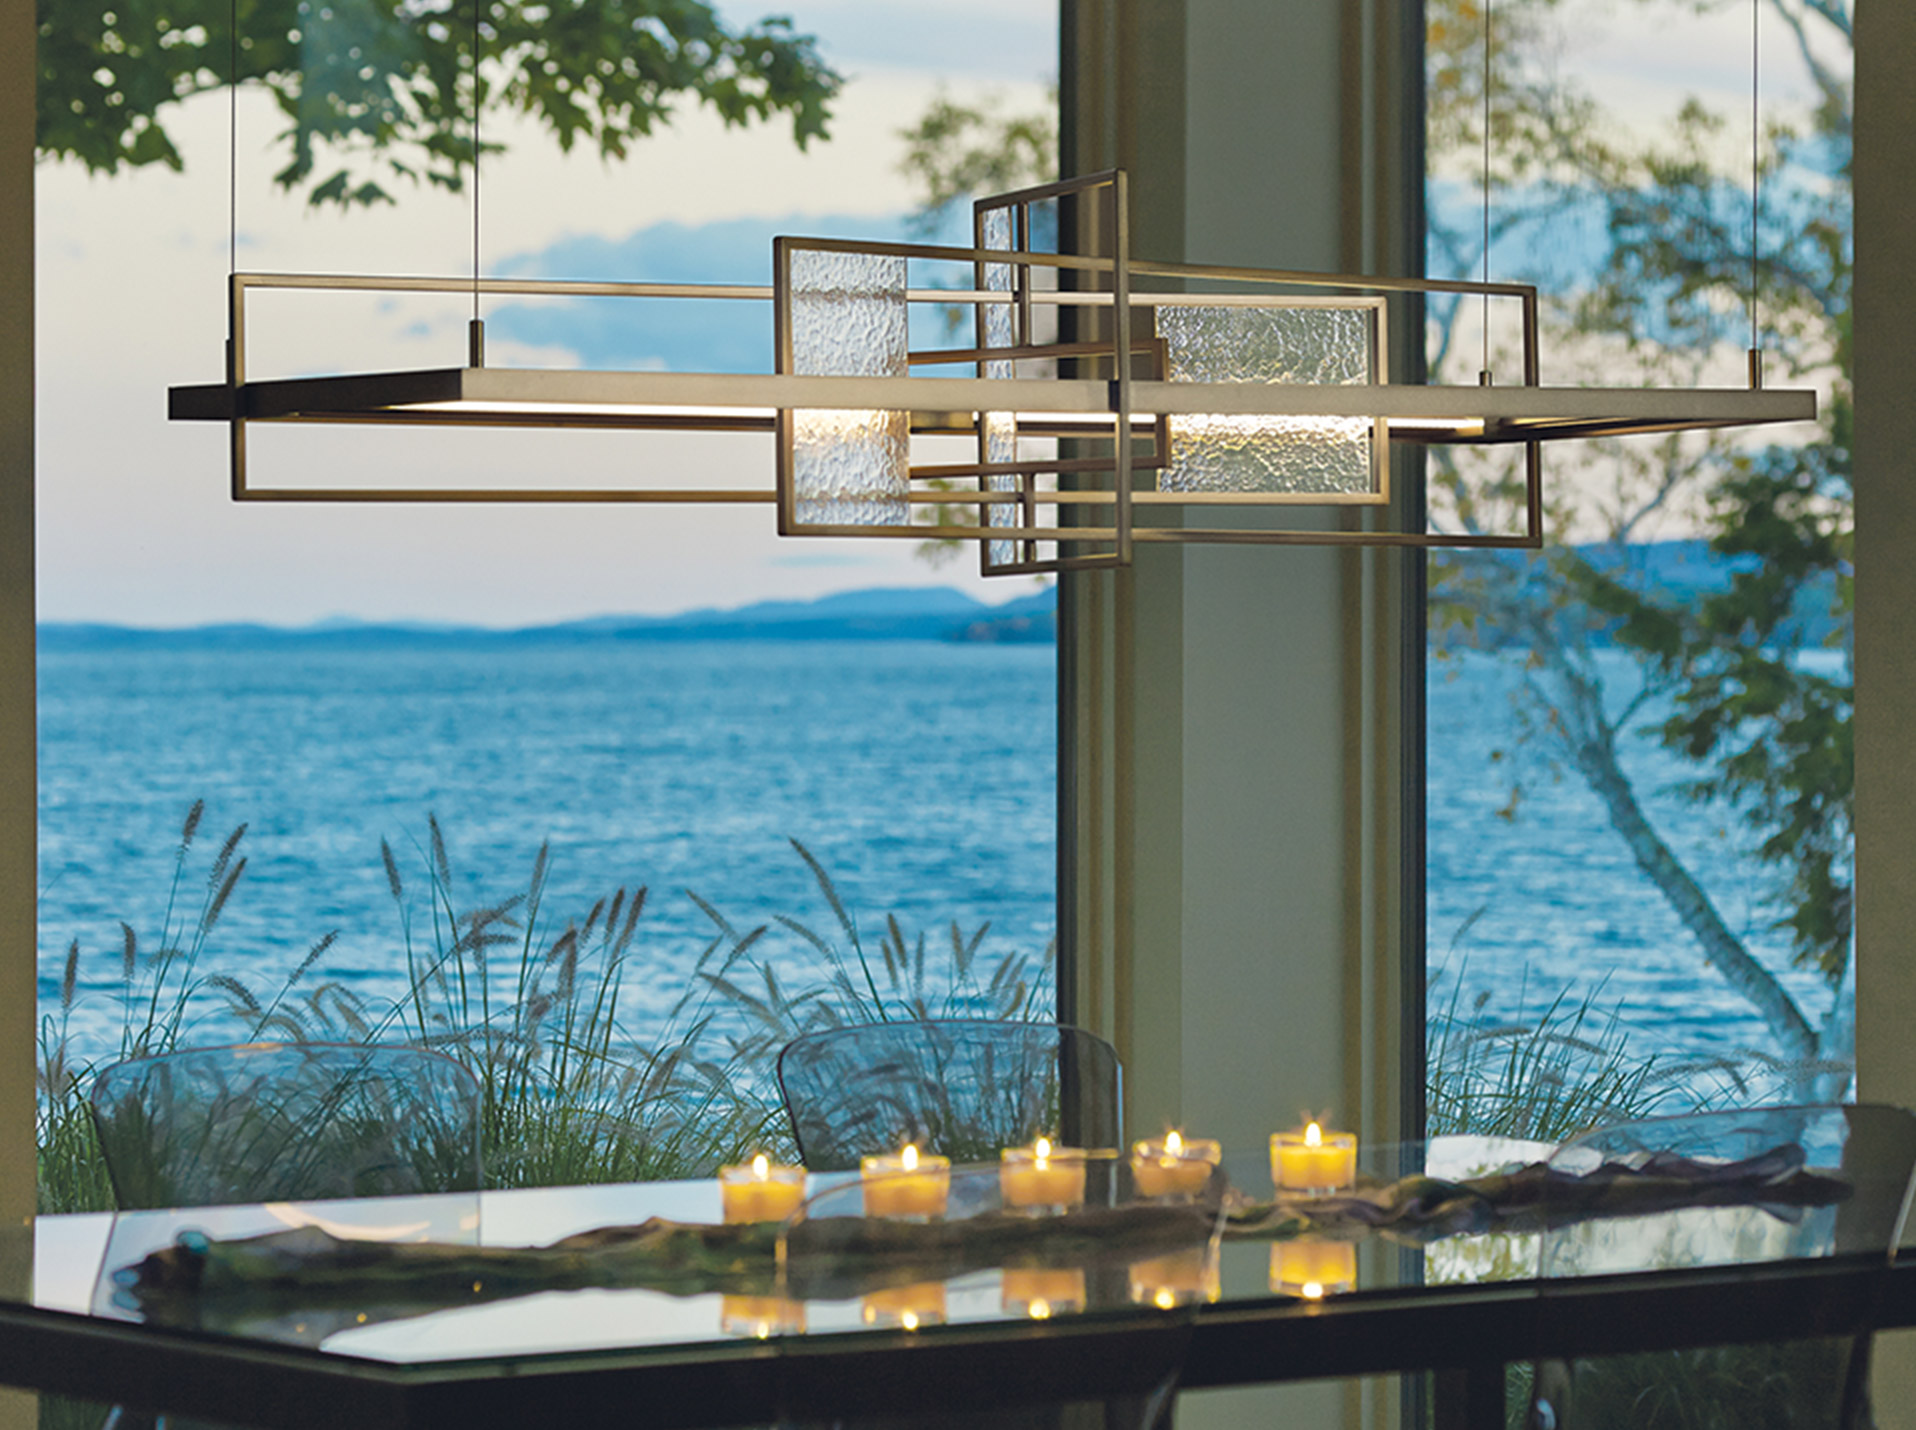 New 2016 arrivals from hubbardton forge summer by hubbardton forge arubaitofo Image collections